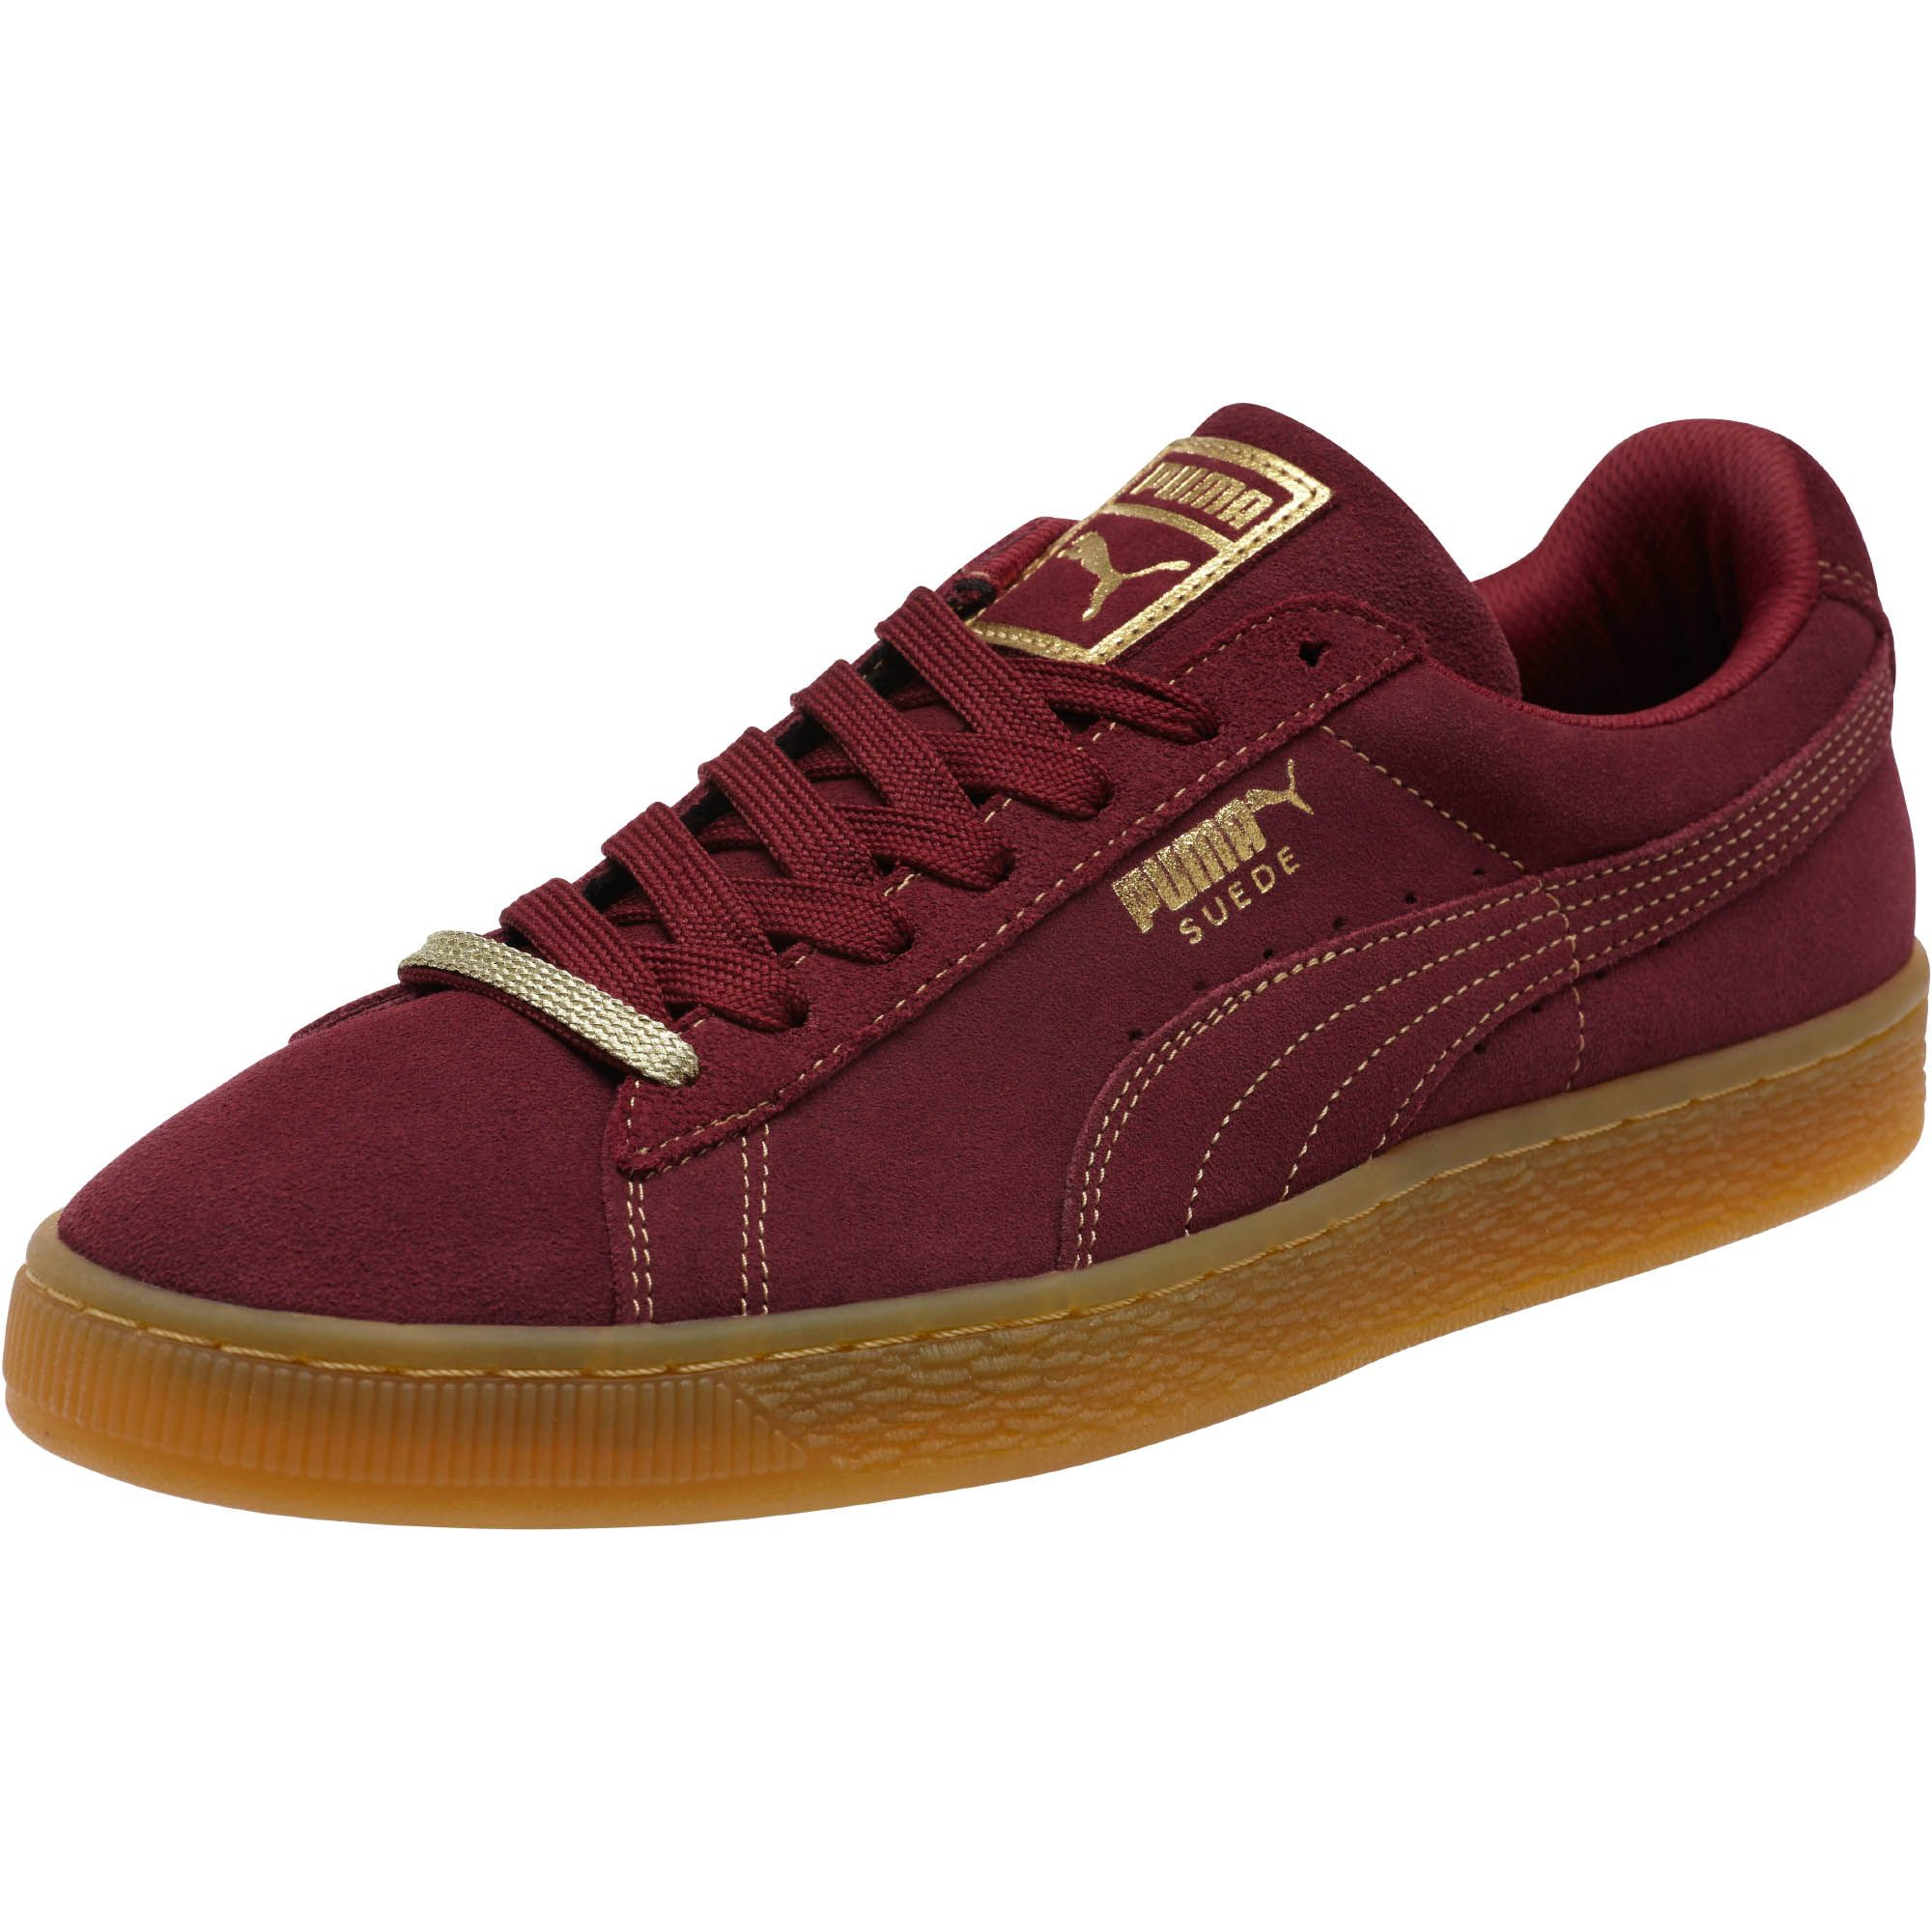 402e6ccea661c4 Lyst - PUMA Suede Classic Gold Foil Men s Sneakers in Red for Men